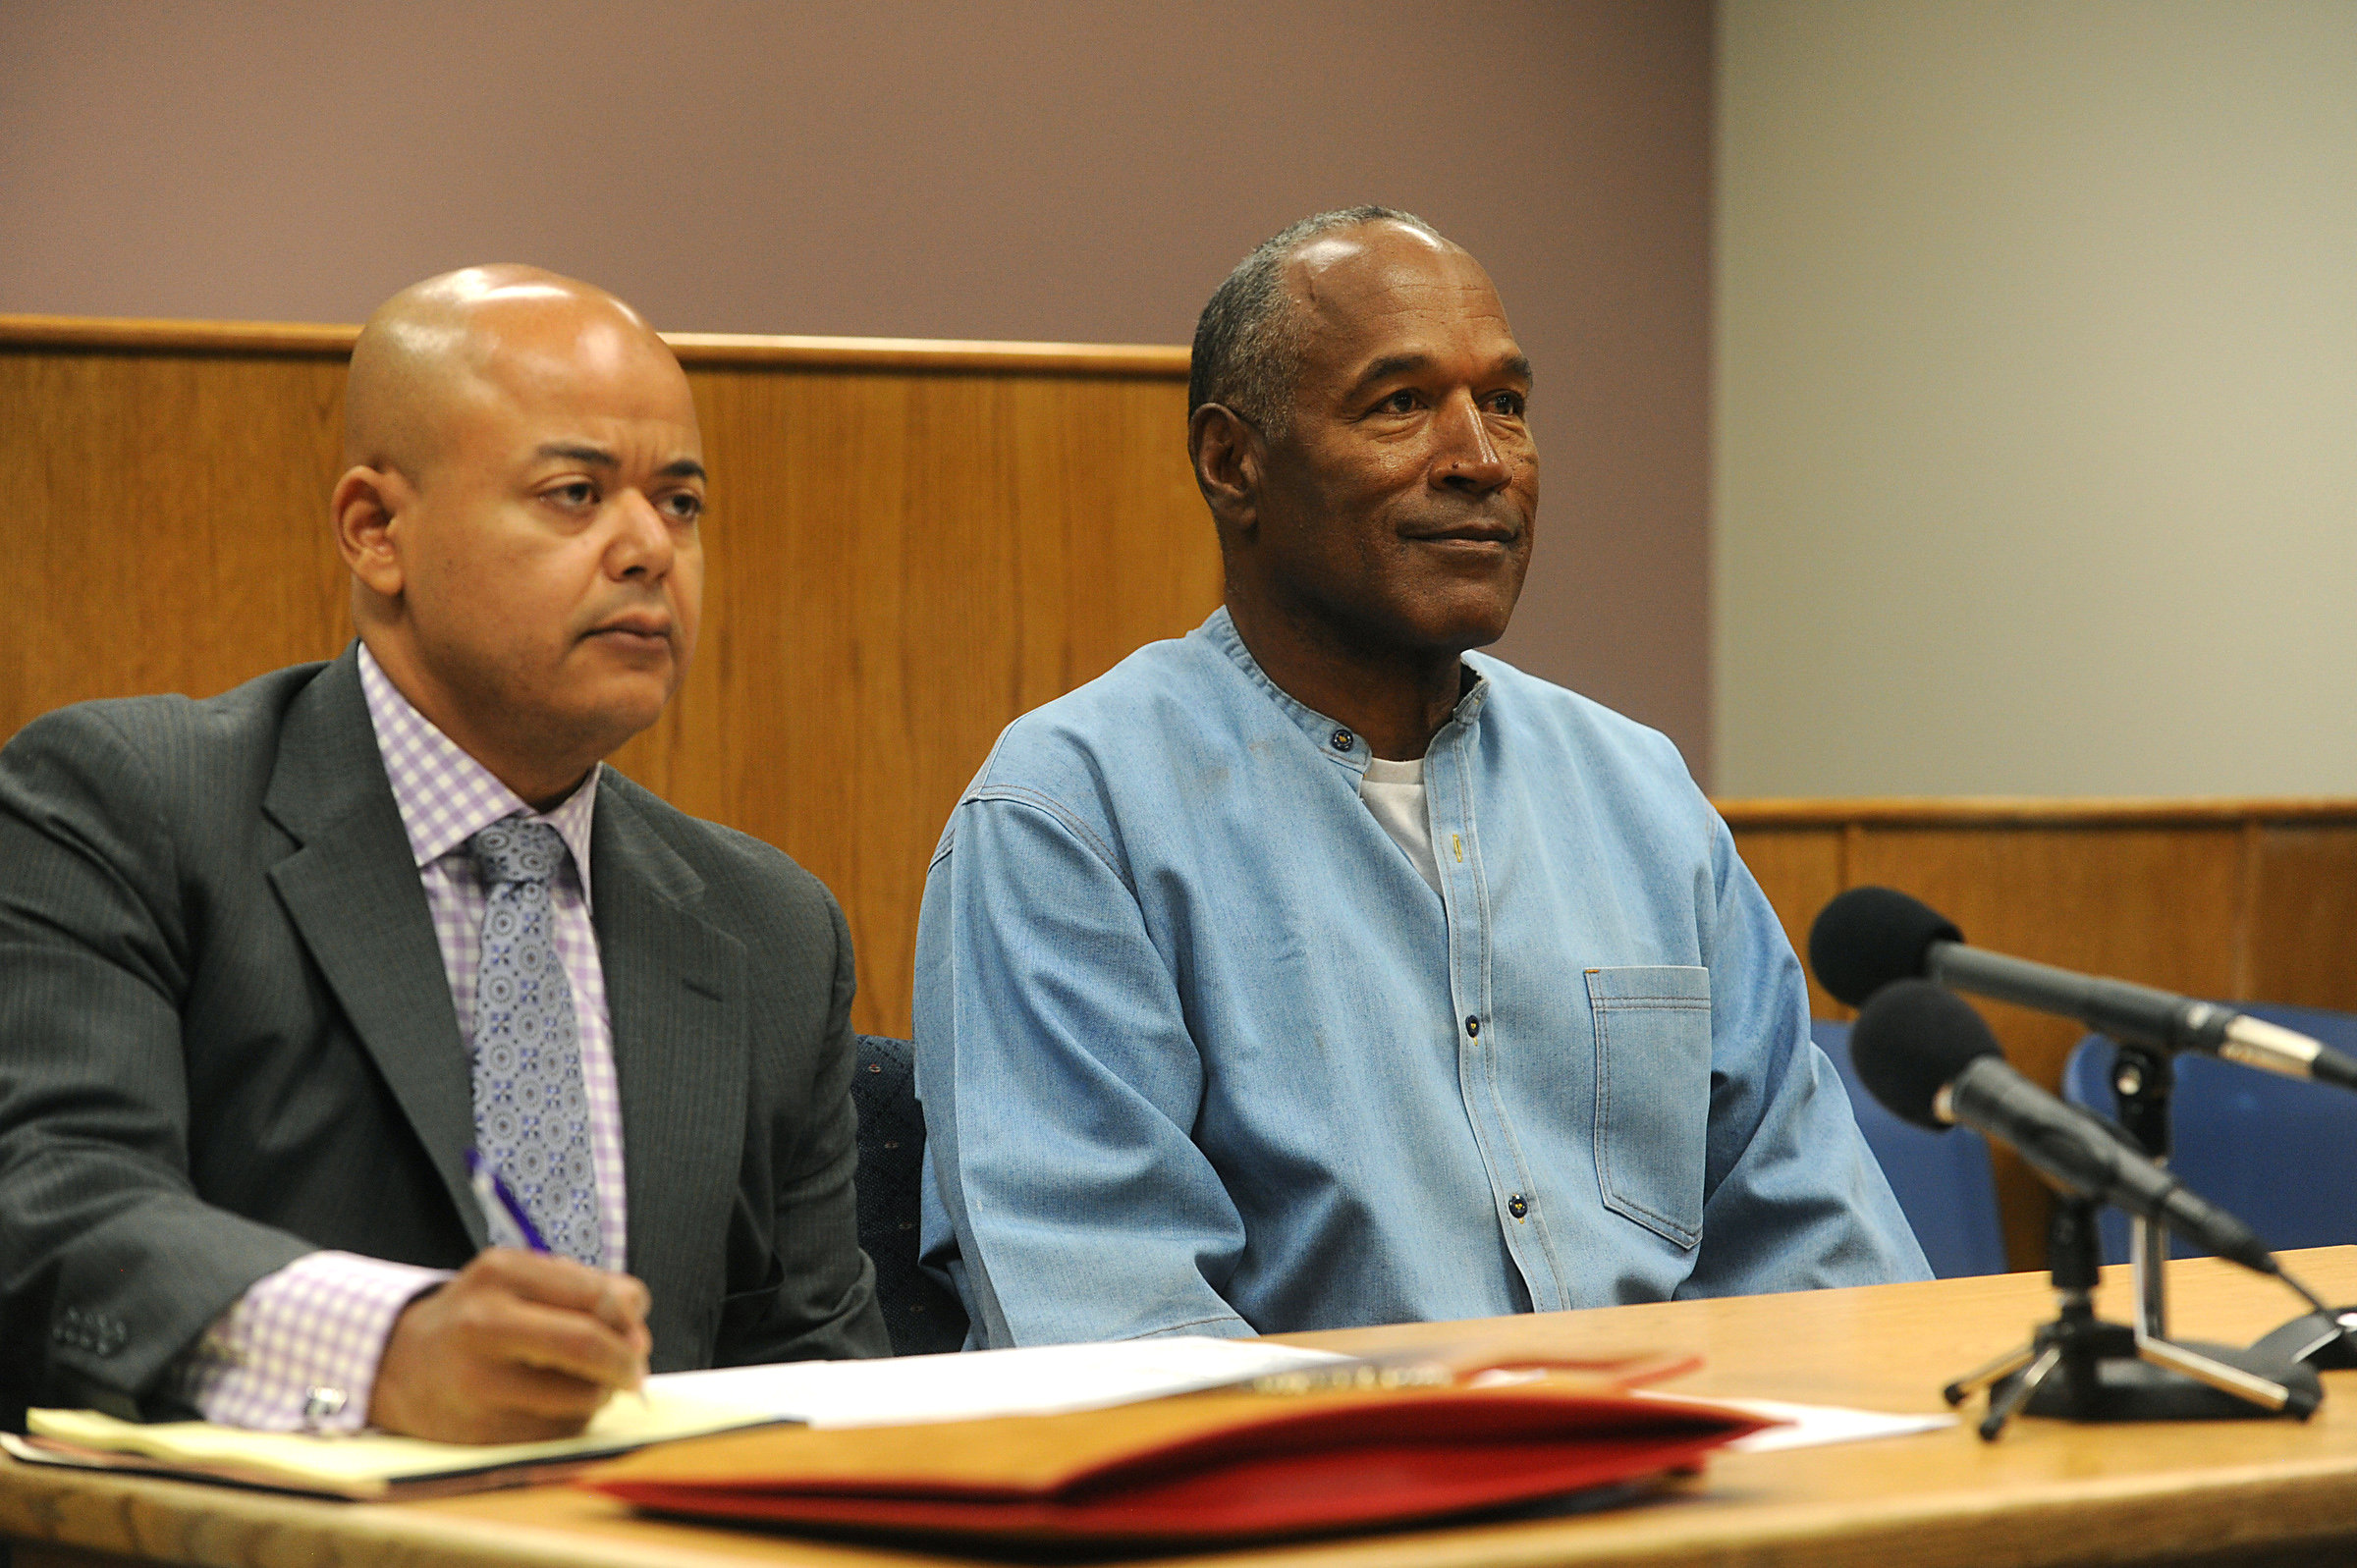 O.J. Simpson arrives for his parole hearing at Lovelock Correctional Centre in Lovelock, Nevada on July 20, 2017. (REUTERS/Jason Bean/POOL)